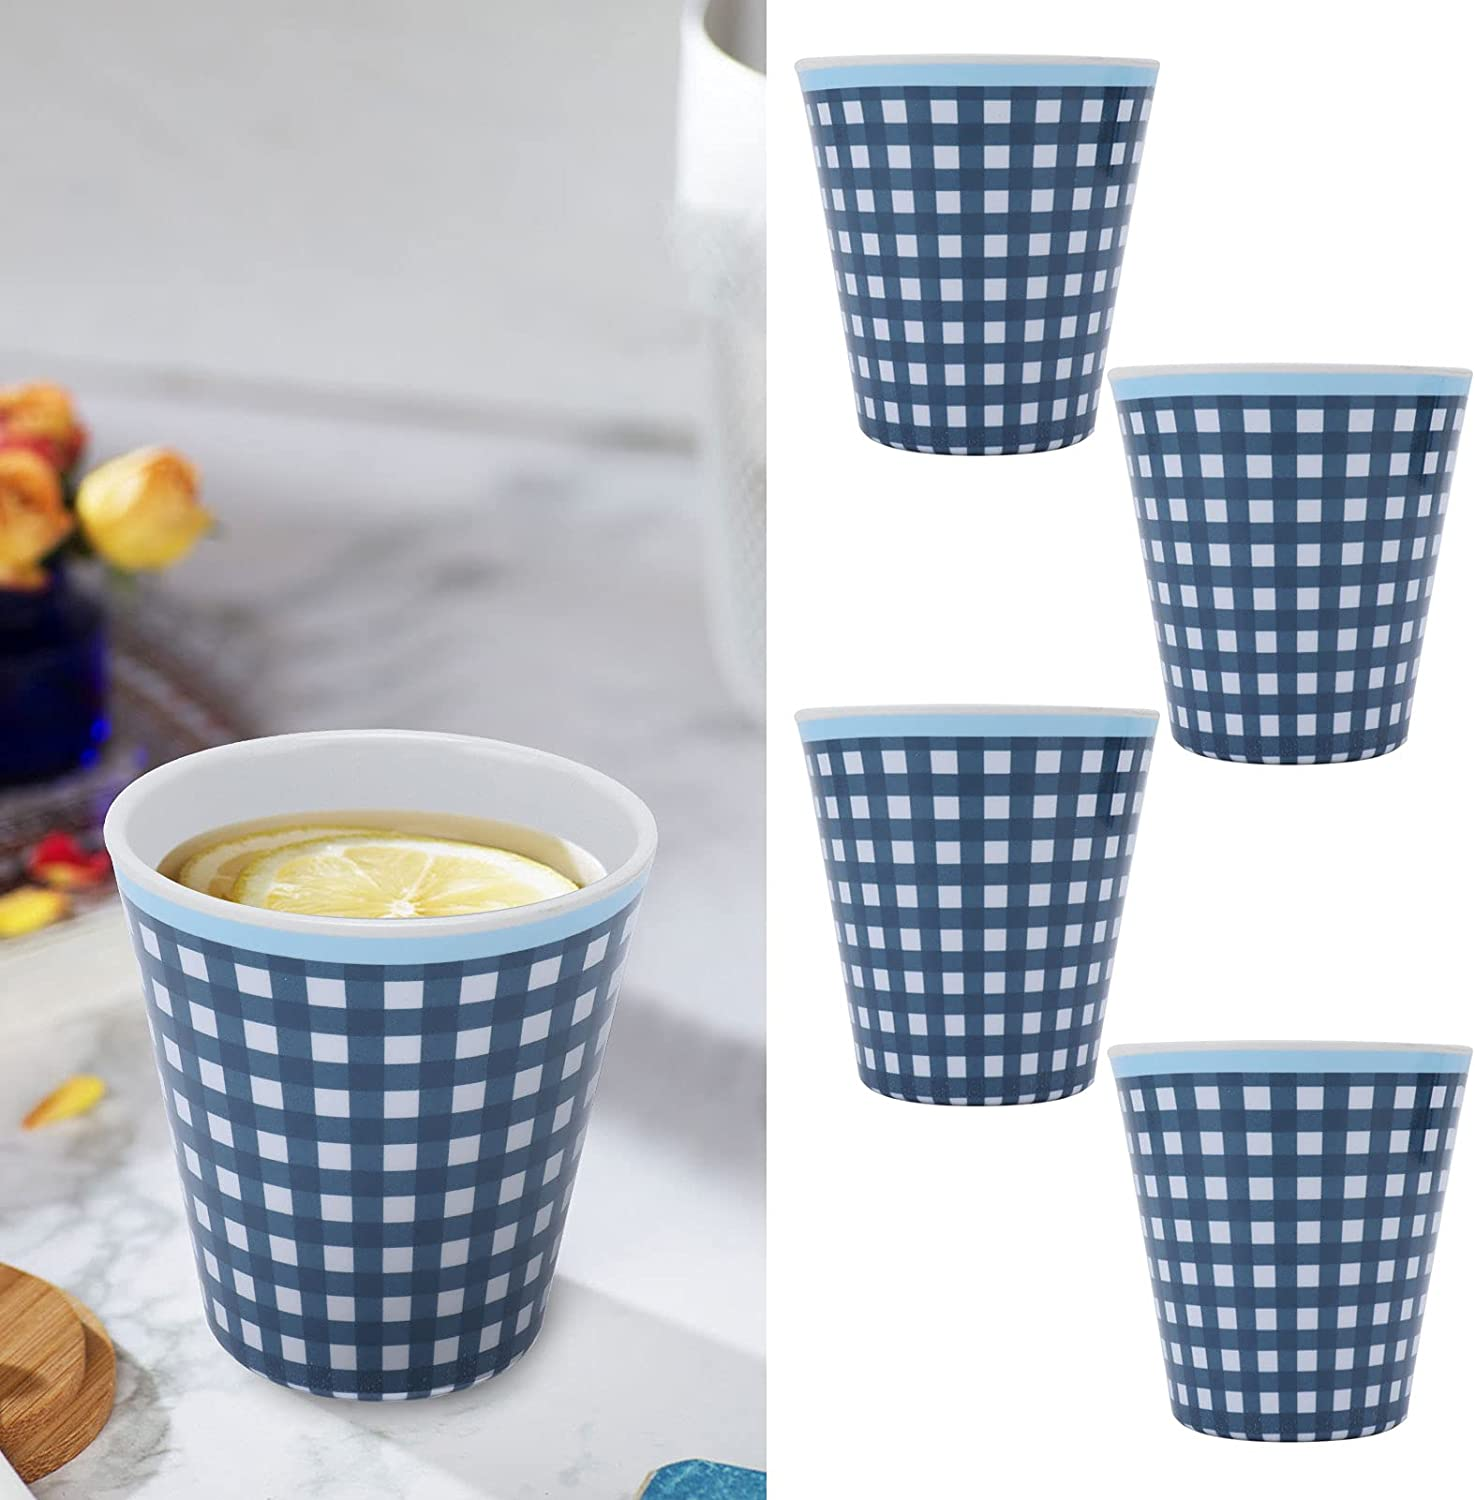 xiji Beverage Mug Not Fragile Easy Durable to and Sturdy Outlet sale feature Max 79% OFF Clean